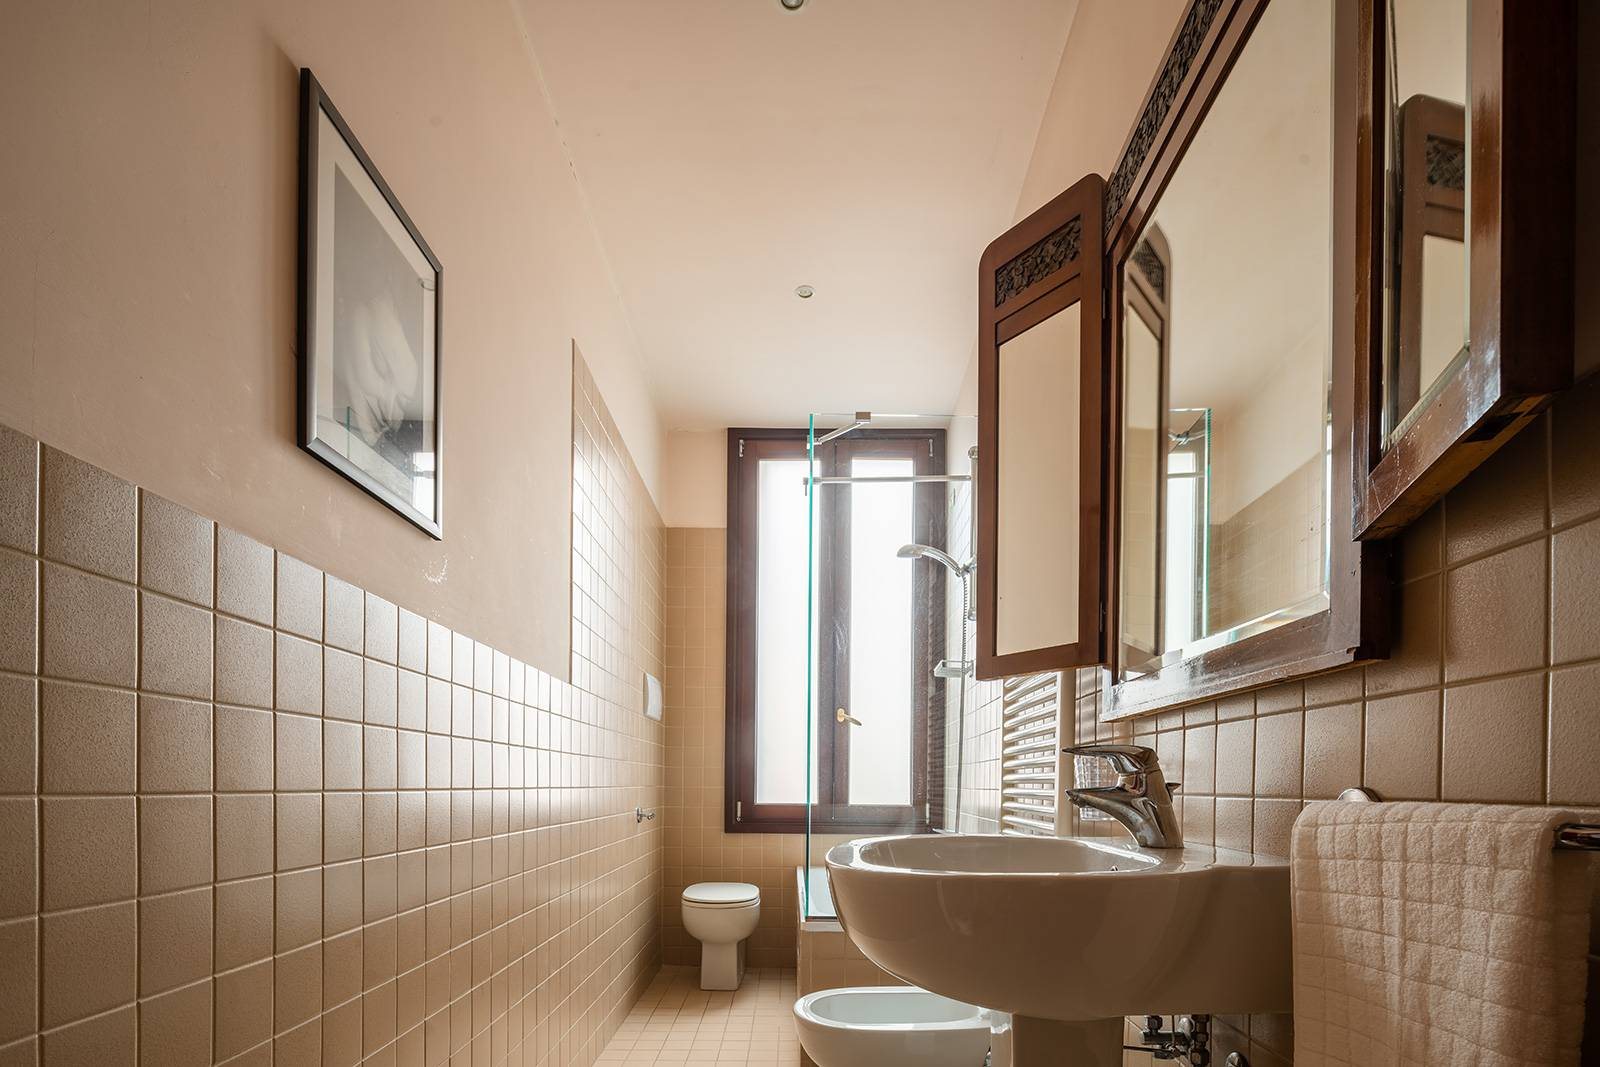 the bathroom is fitted with a bathtub and shower screen